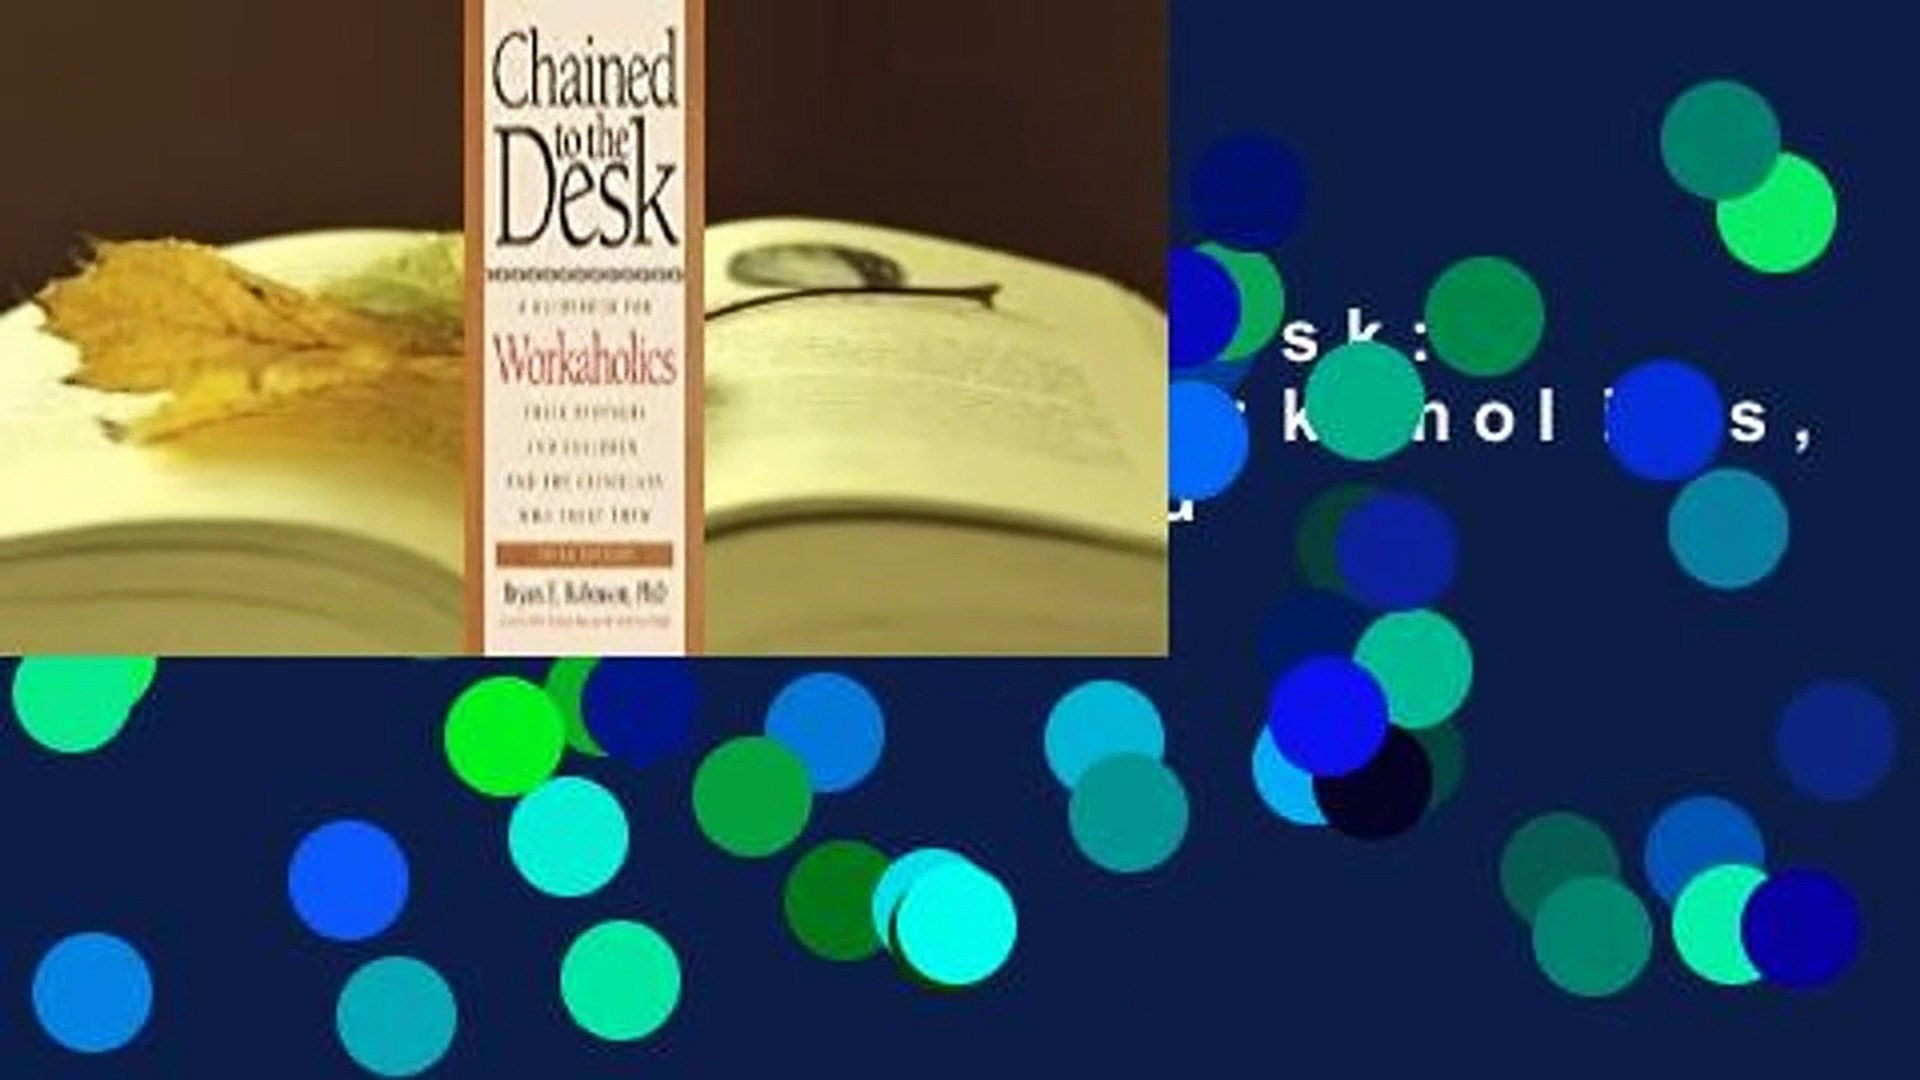 Chained to the Desk: A Guidebook for Workaholics, Their Partners and Children, and the